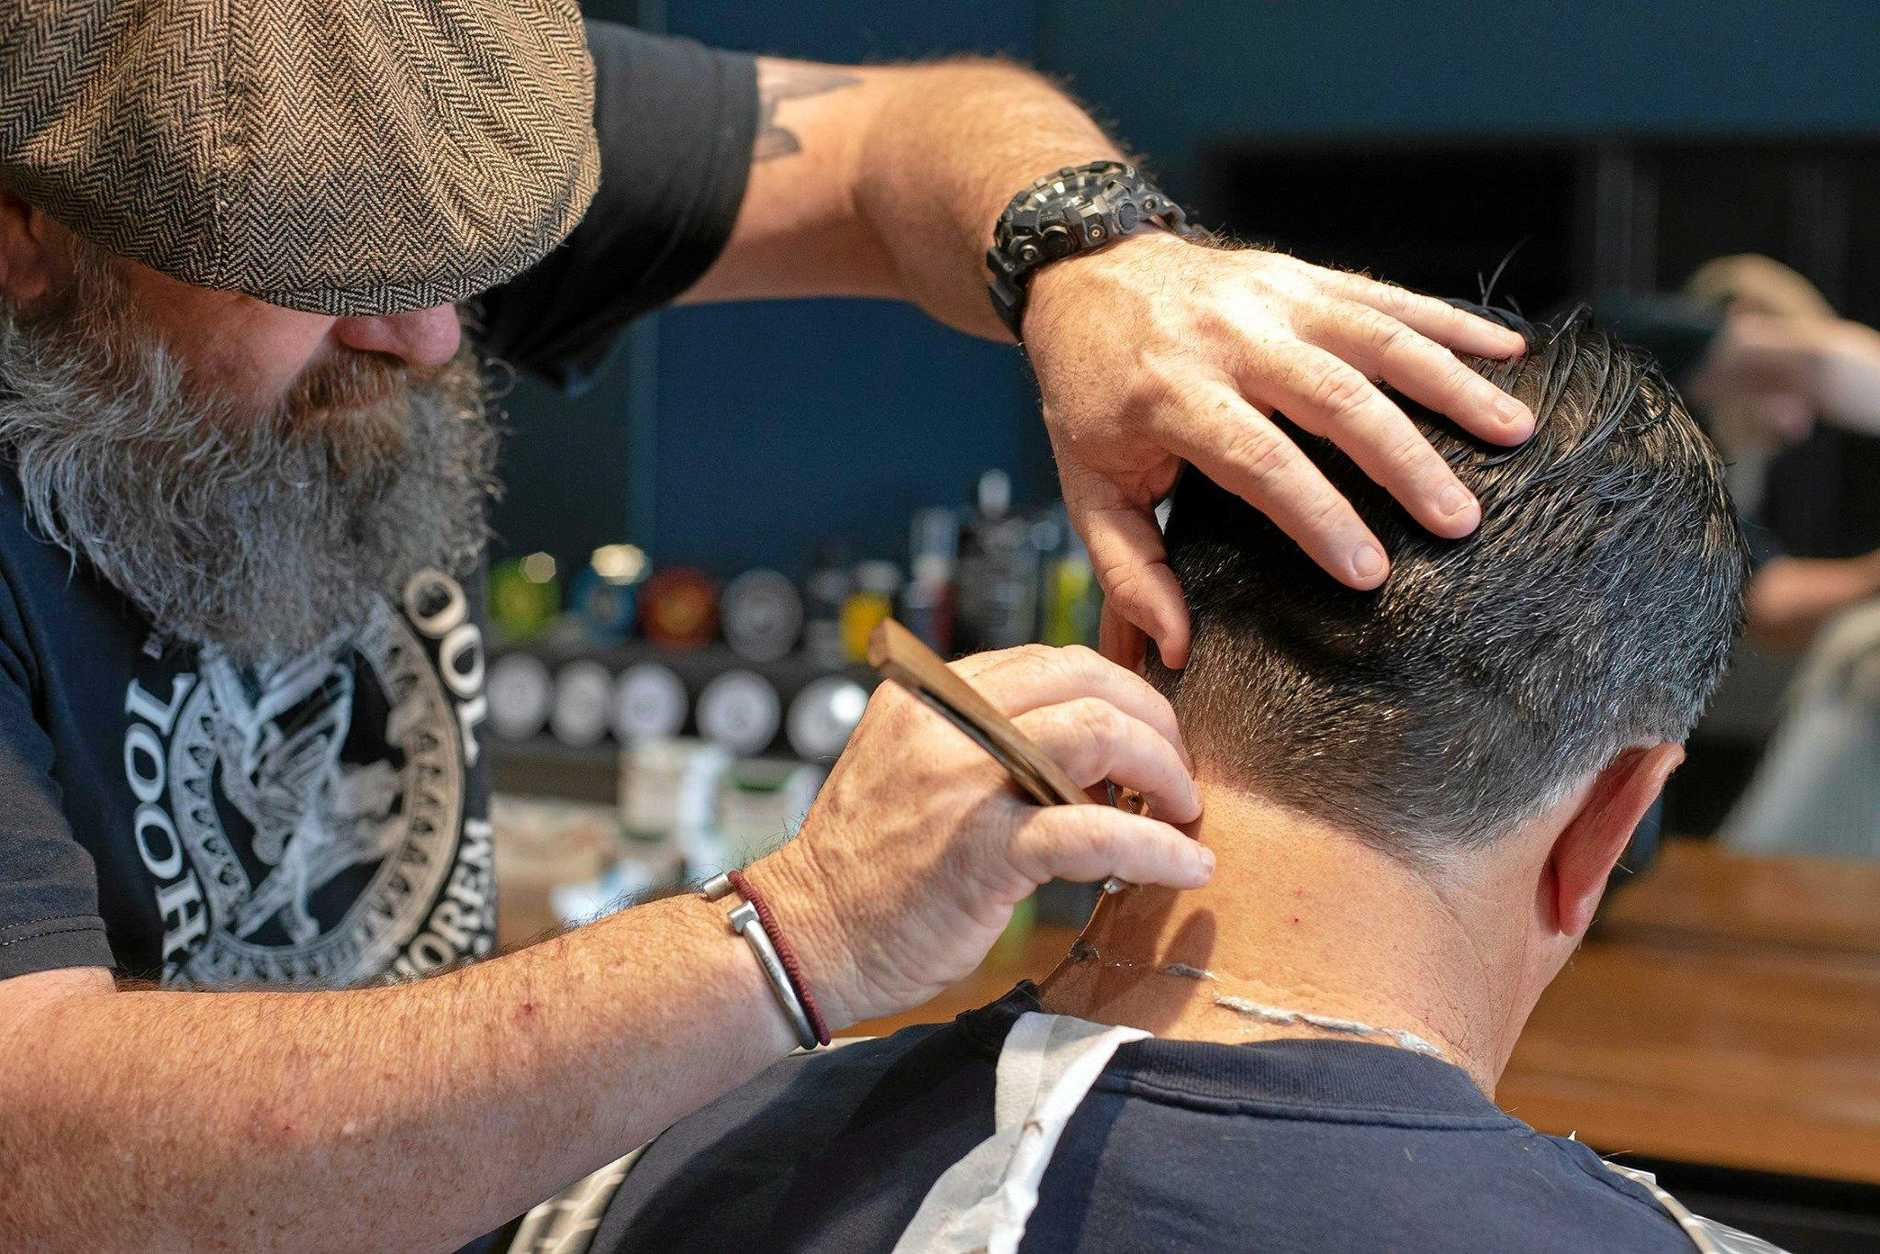 Damian Roche from Houston and Co Barber Shop in Karalee tends to a client.